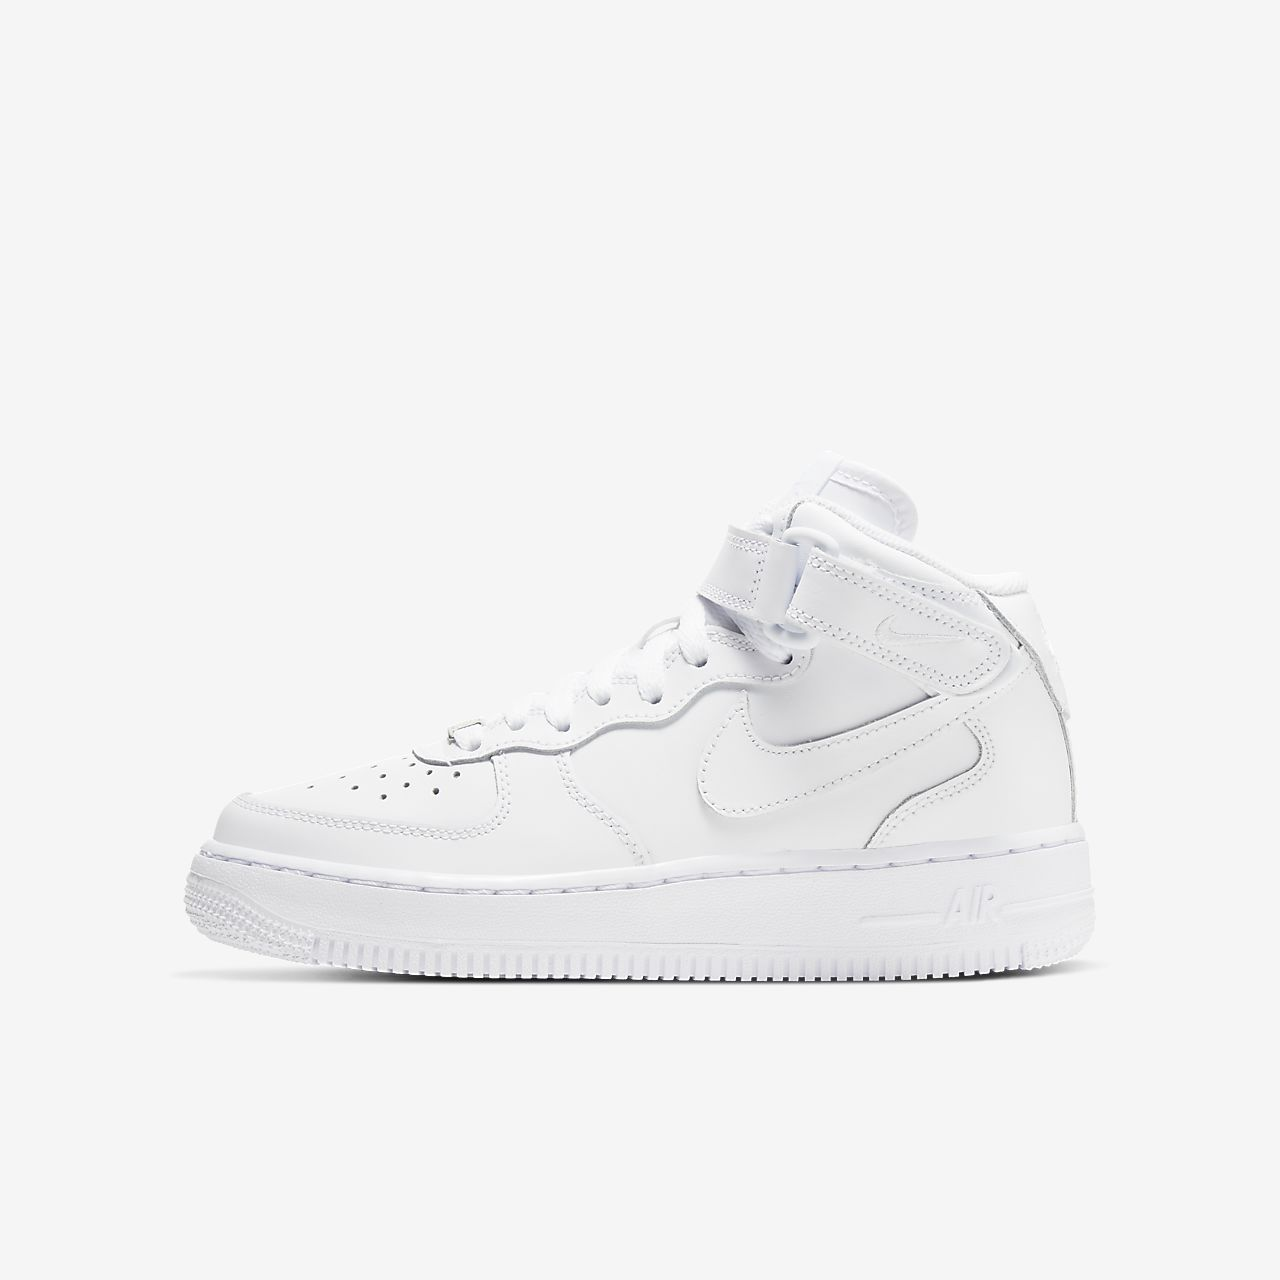 new style ed69b 91ffb ... Nike Air Force 1 Mid 06 Big Kids  Shoe